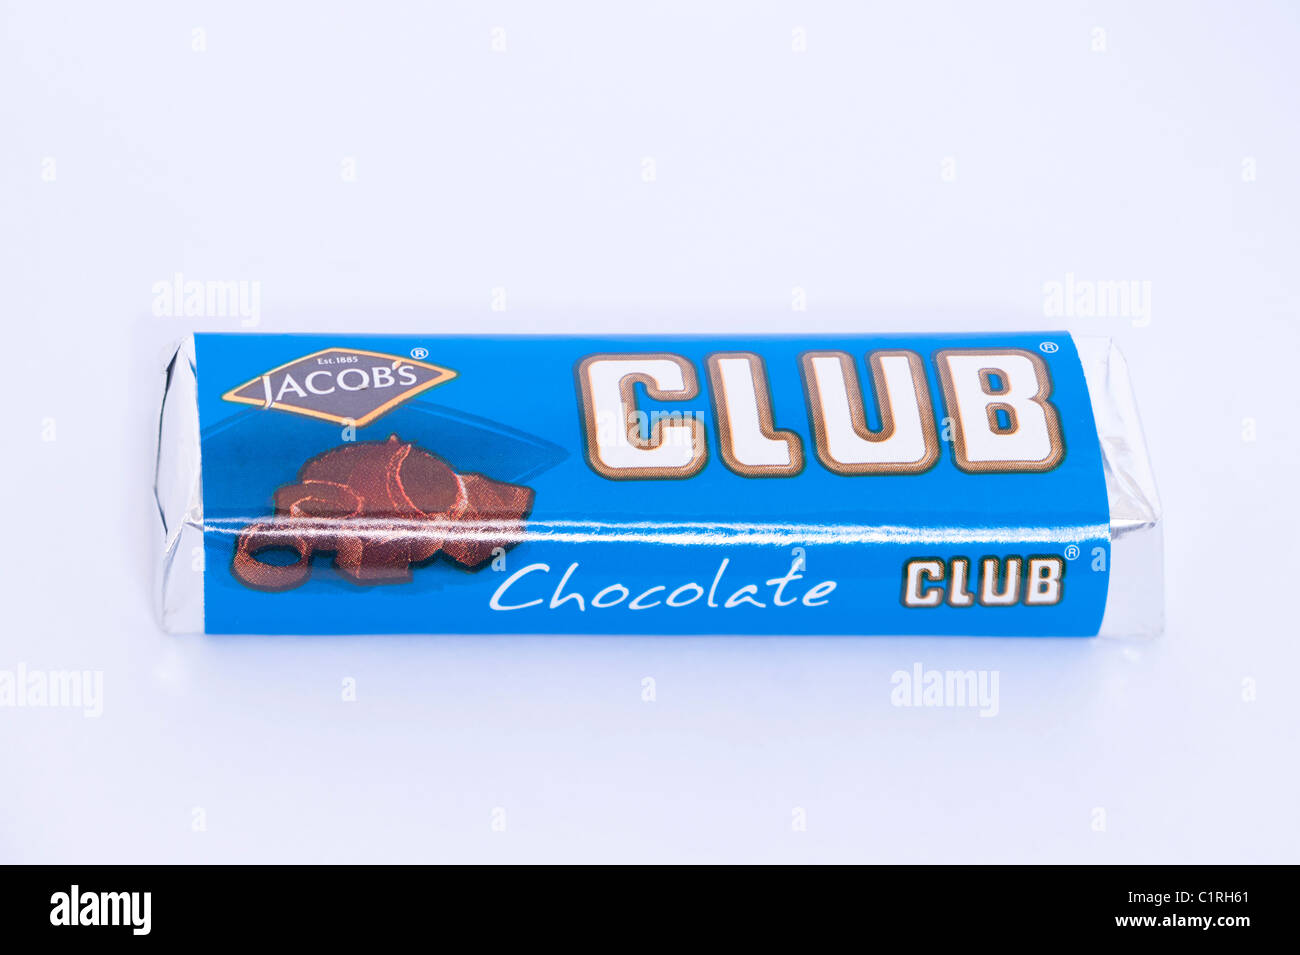 A Chocolate Flavoured Jacobs Club Chocolate Biscuit On A